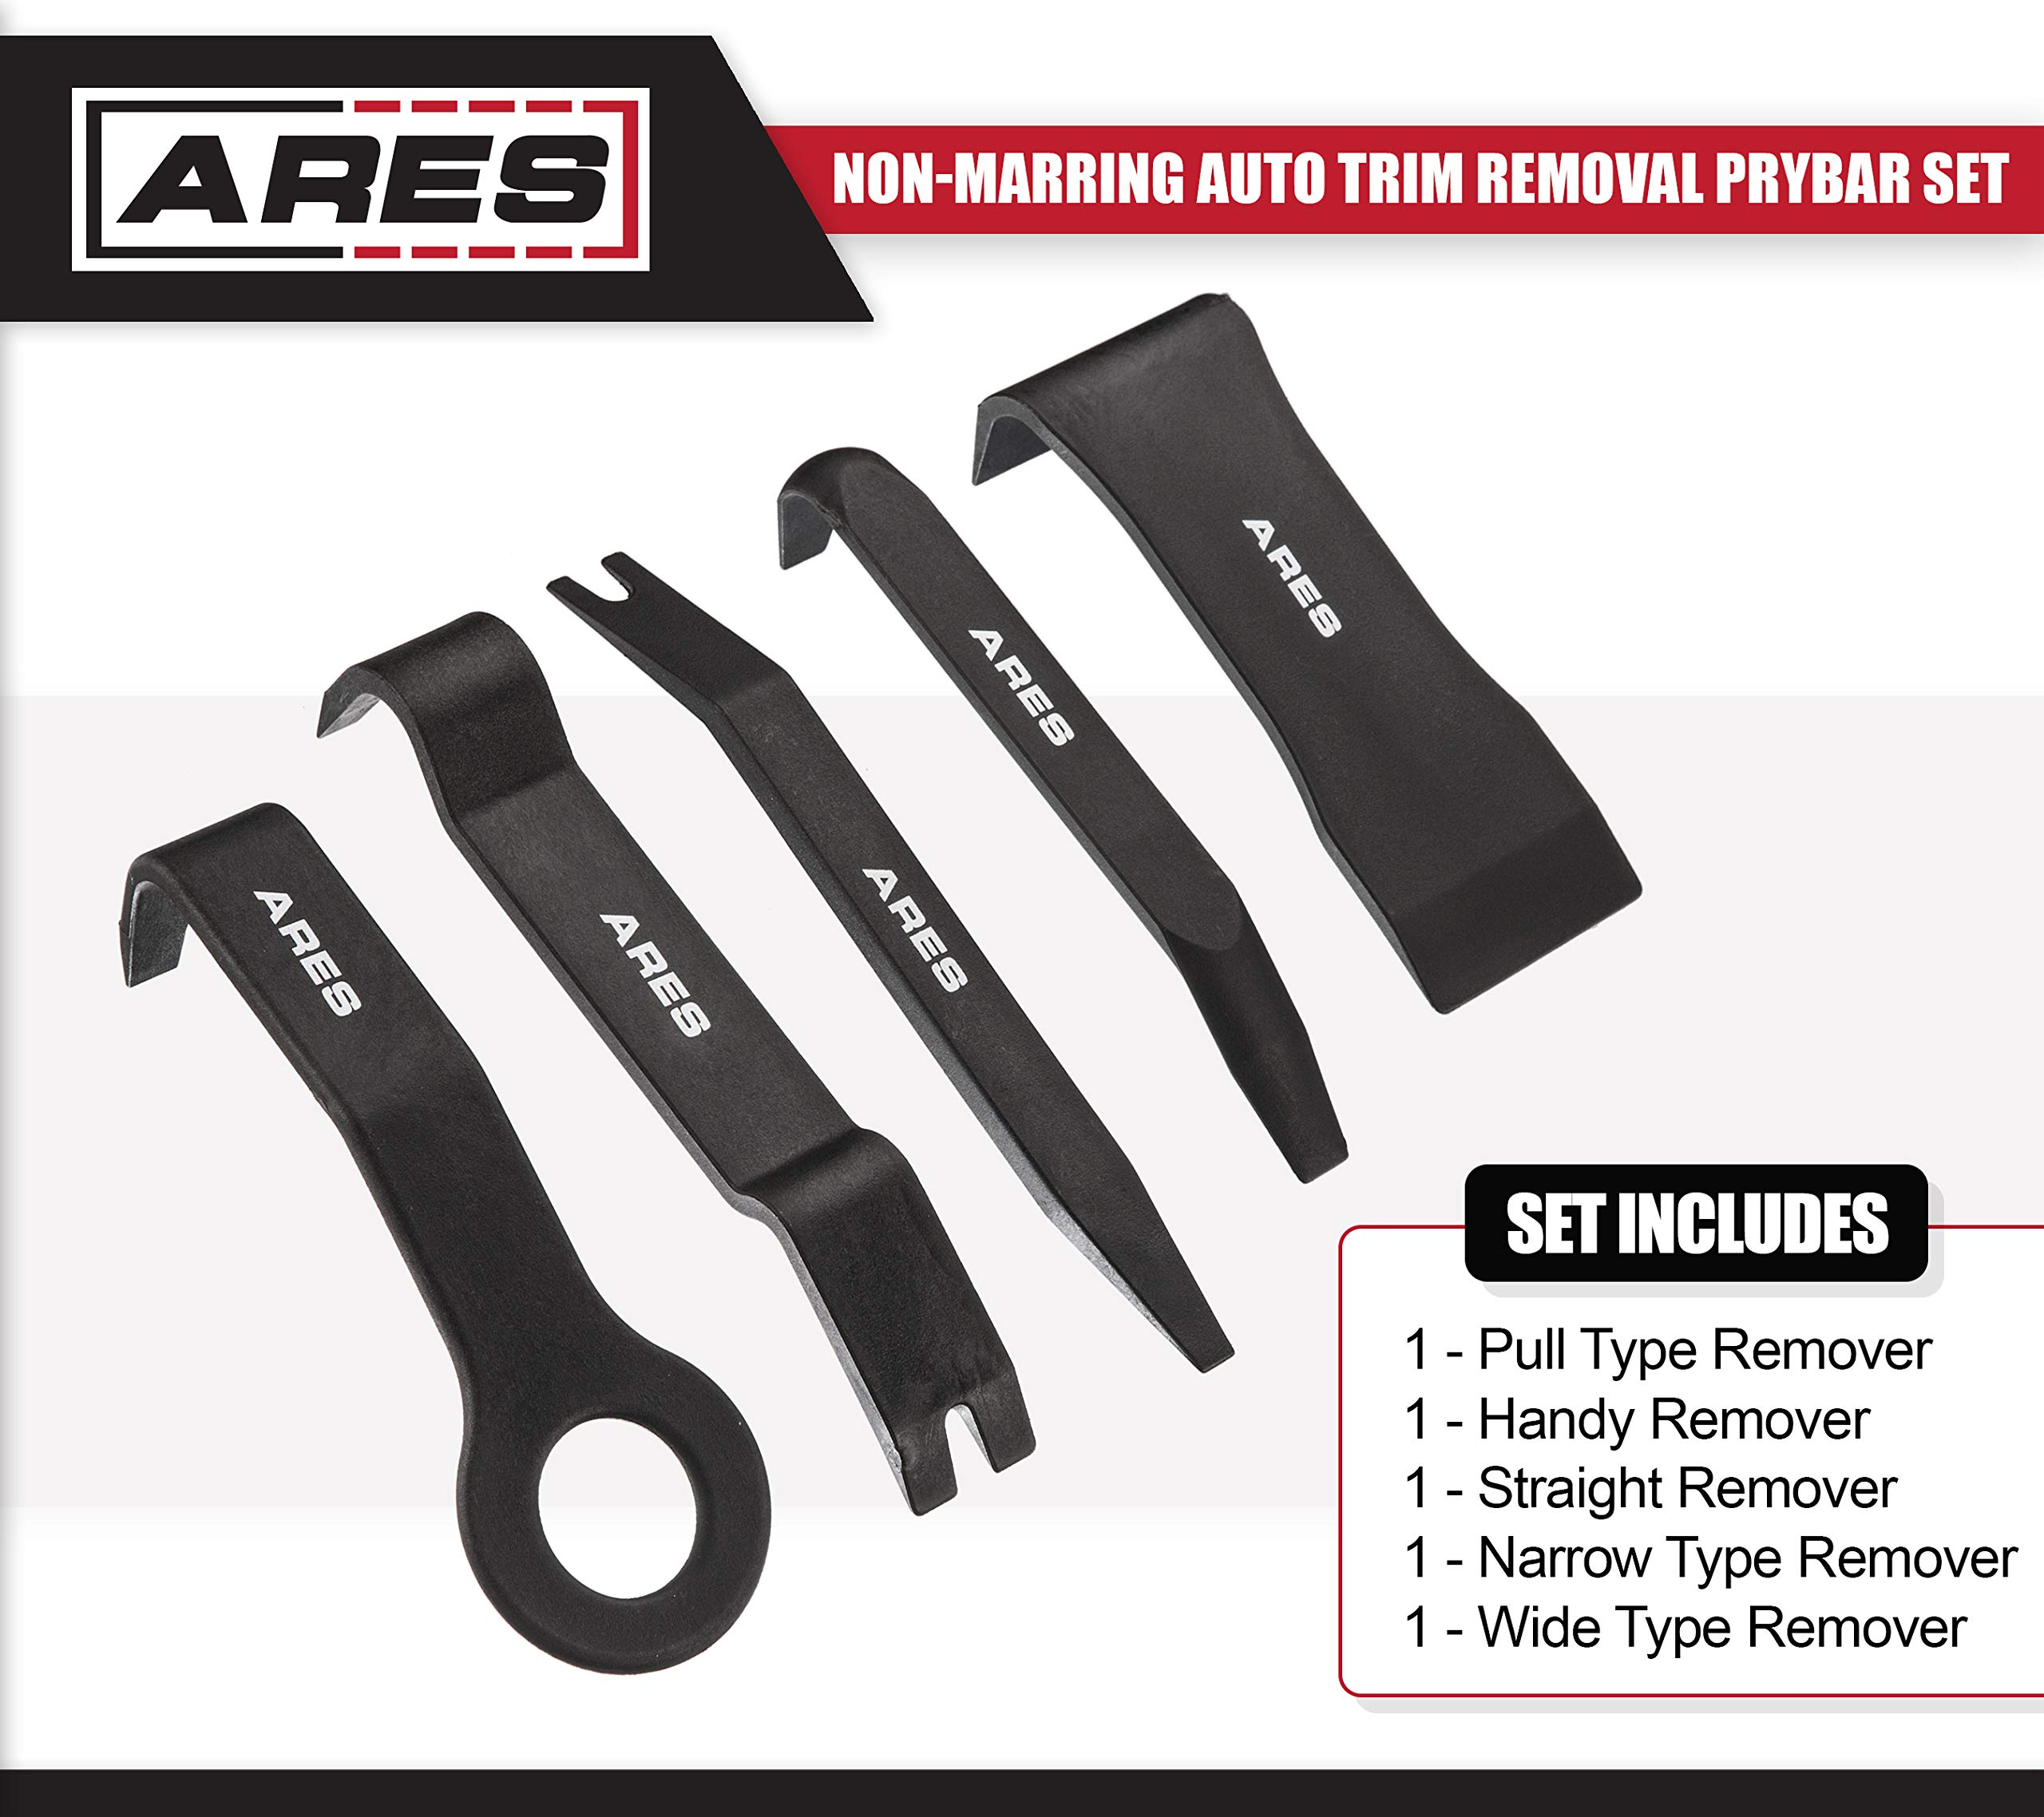 ARES 70223 | 5-Piece Non-Marring Auto Trim Removal Prybar Set | Remove Trim with Ease | Fasteners, Molding, and Dash Panel Removal Set by ARES (Image #2)